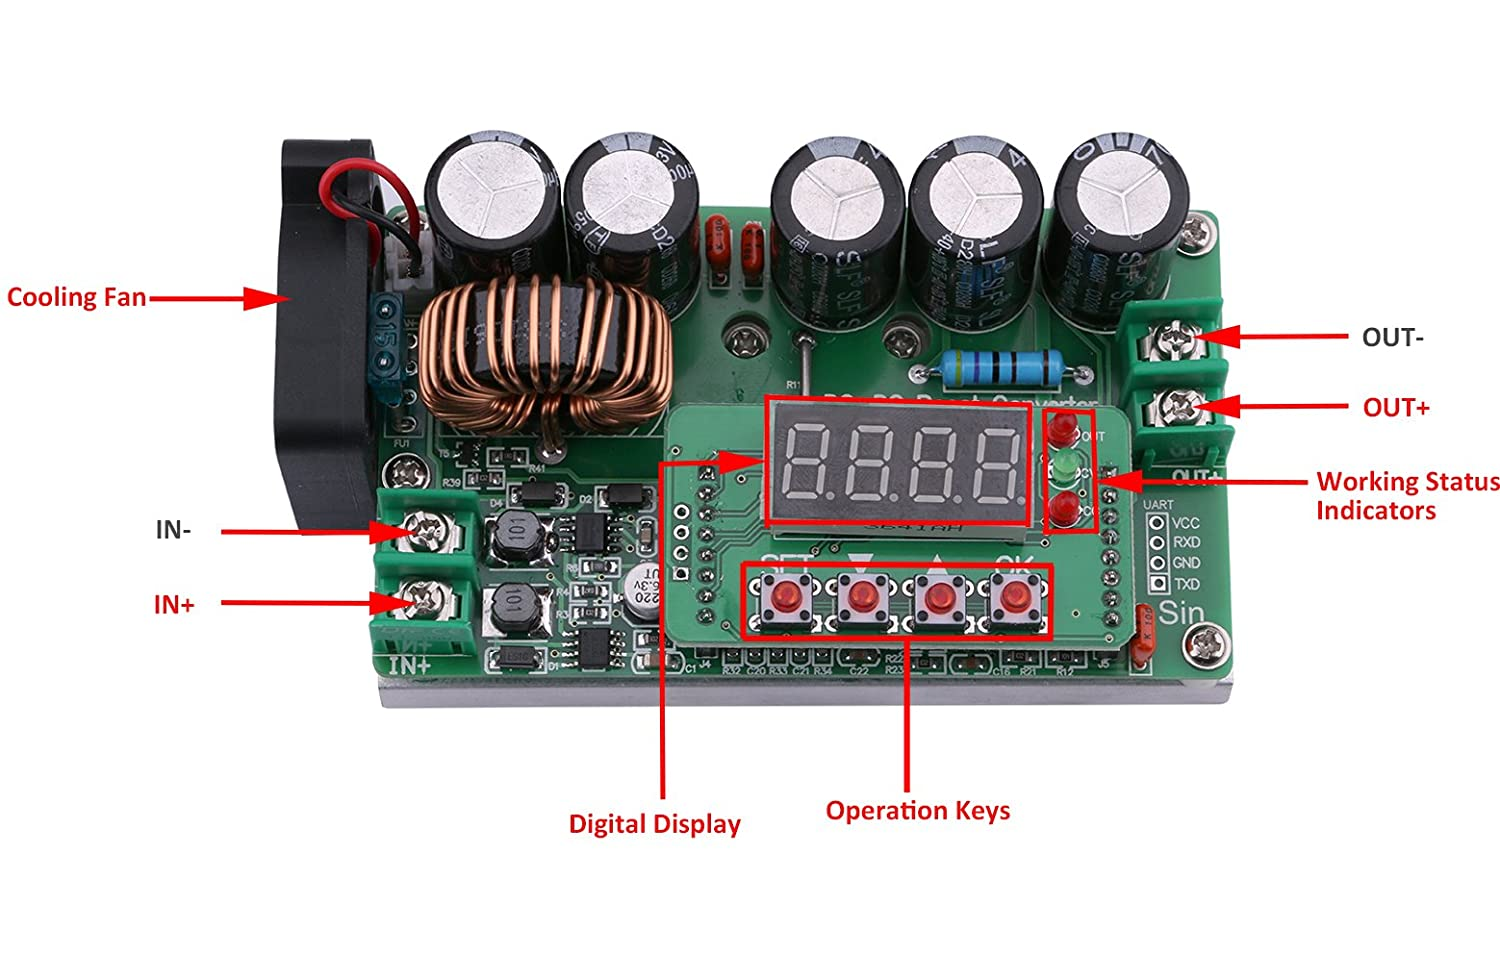 Yeeco DC DC 10-60V to 13-97V Boost Voltage Regulator Power Converter 1500W 22A Volt Transformer Power Supply Module Board with Adjustable Potentiometer /& Heatsink Fan